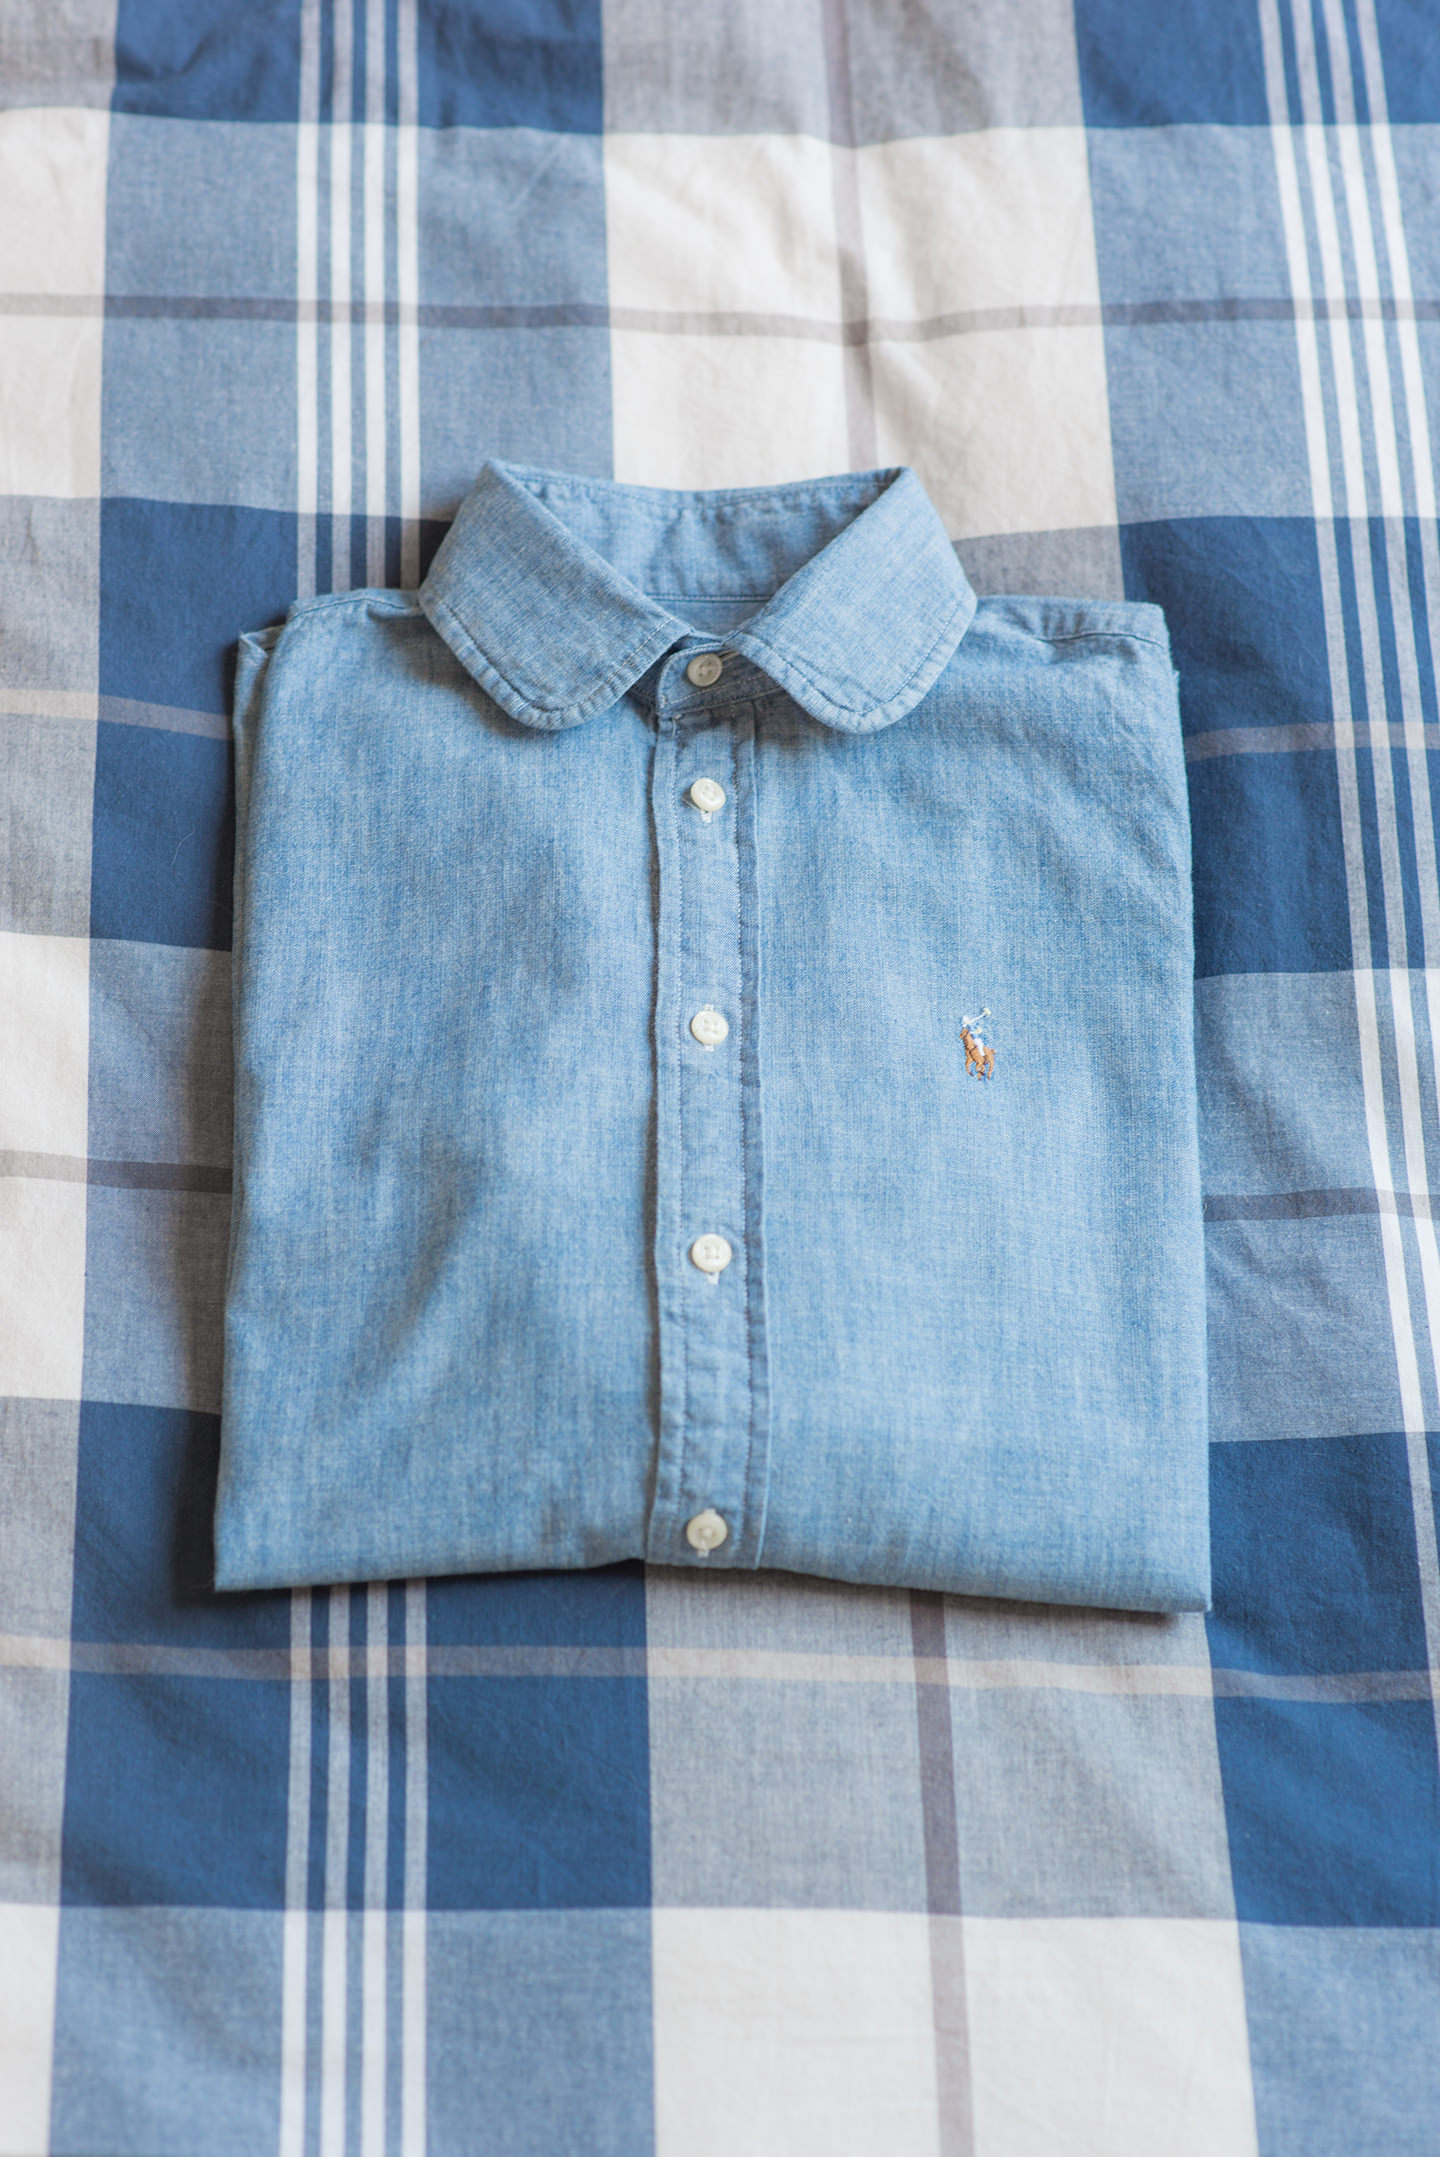 Blog-Mode-and-The-City-LIfestyle-5-petites-choses-chemise-jean-femme-ralph-lauren